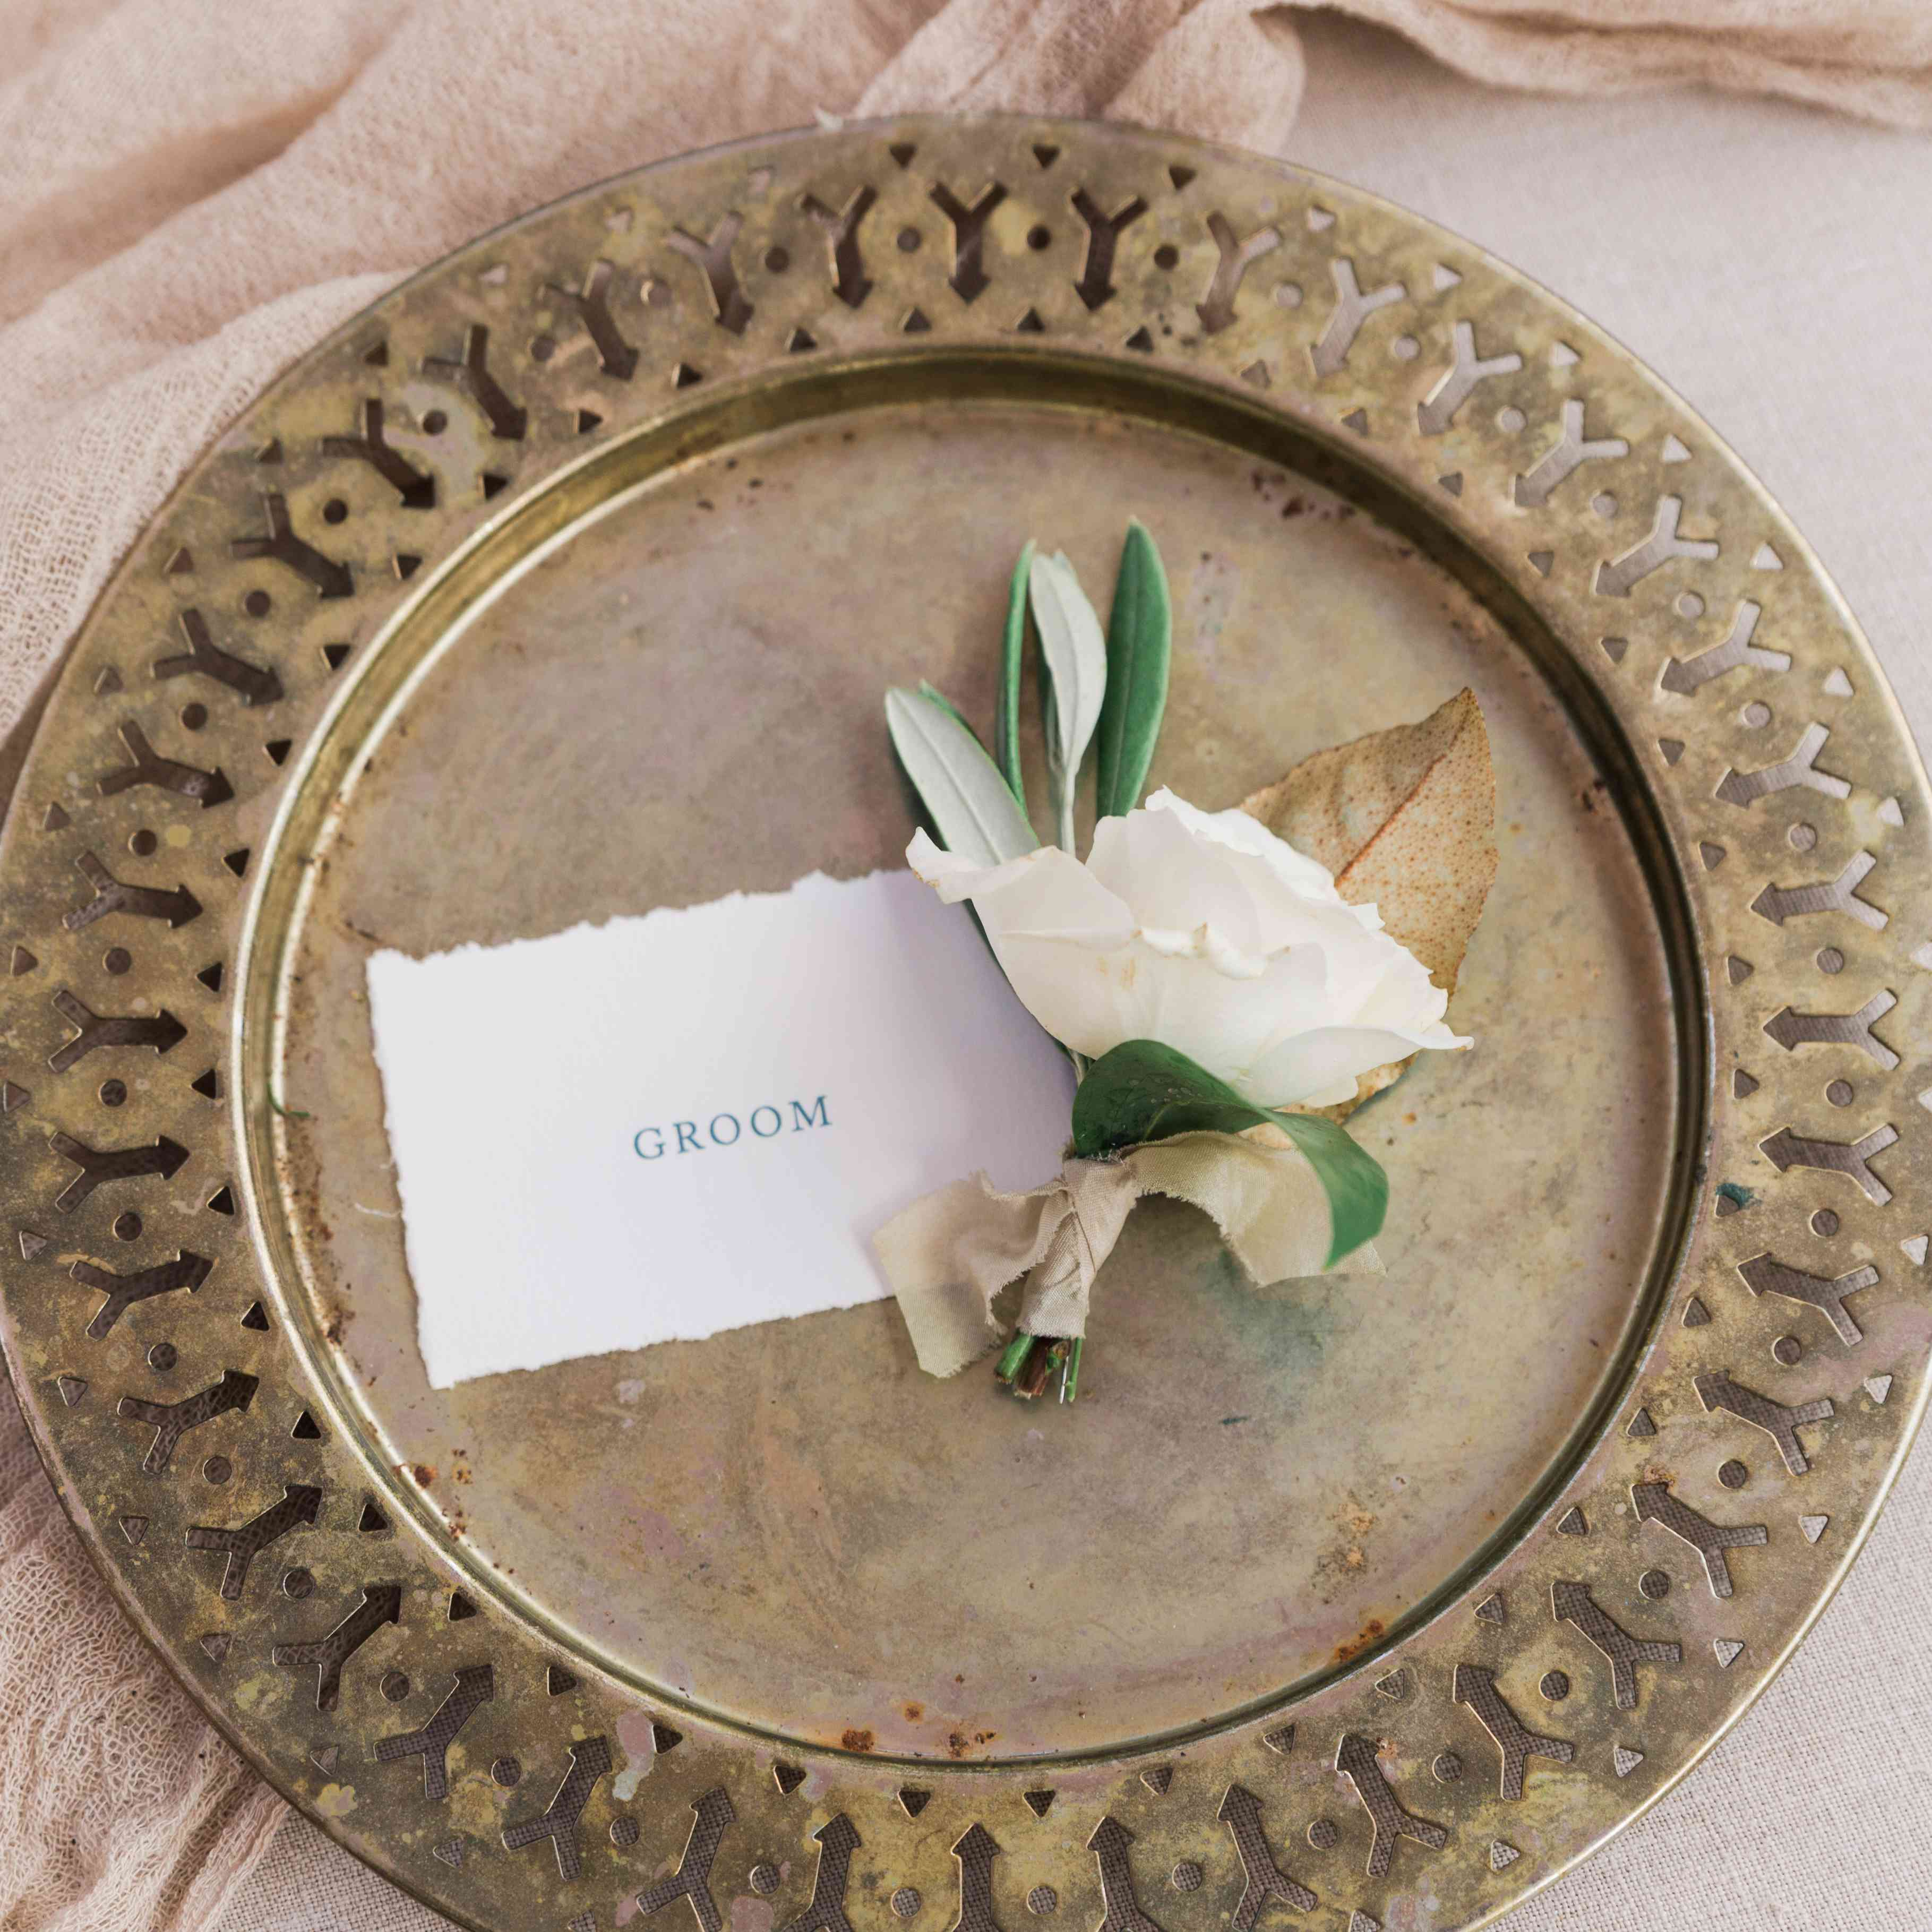 Rose boutonniere with browned leaf